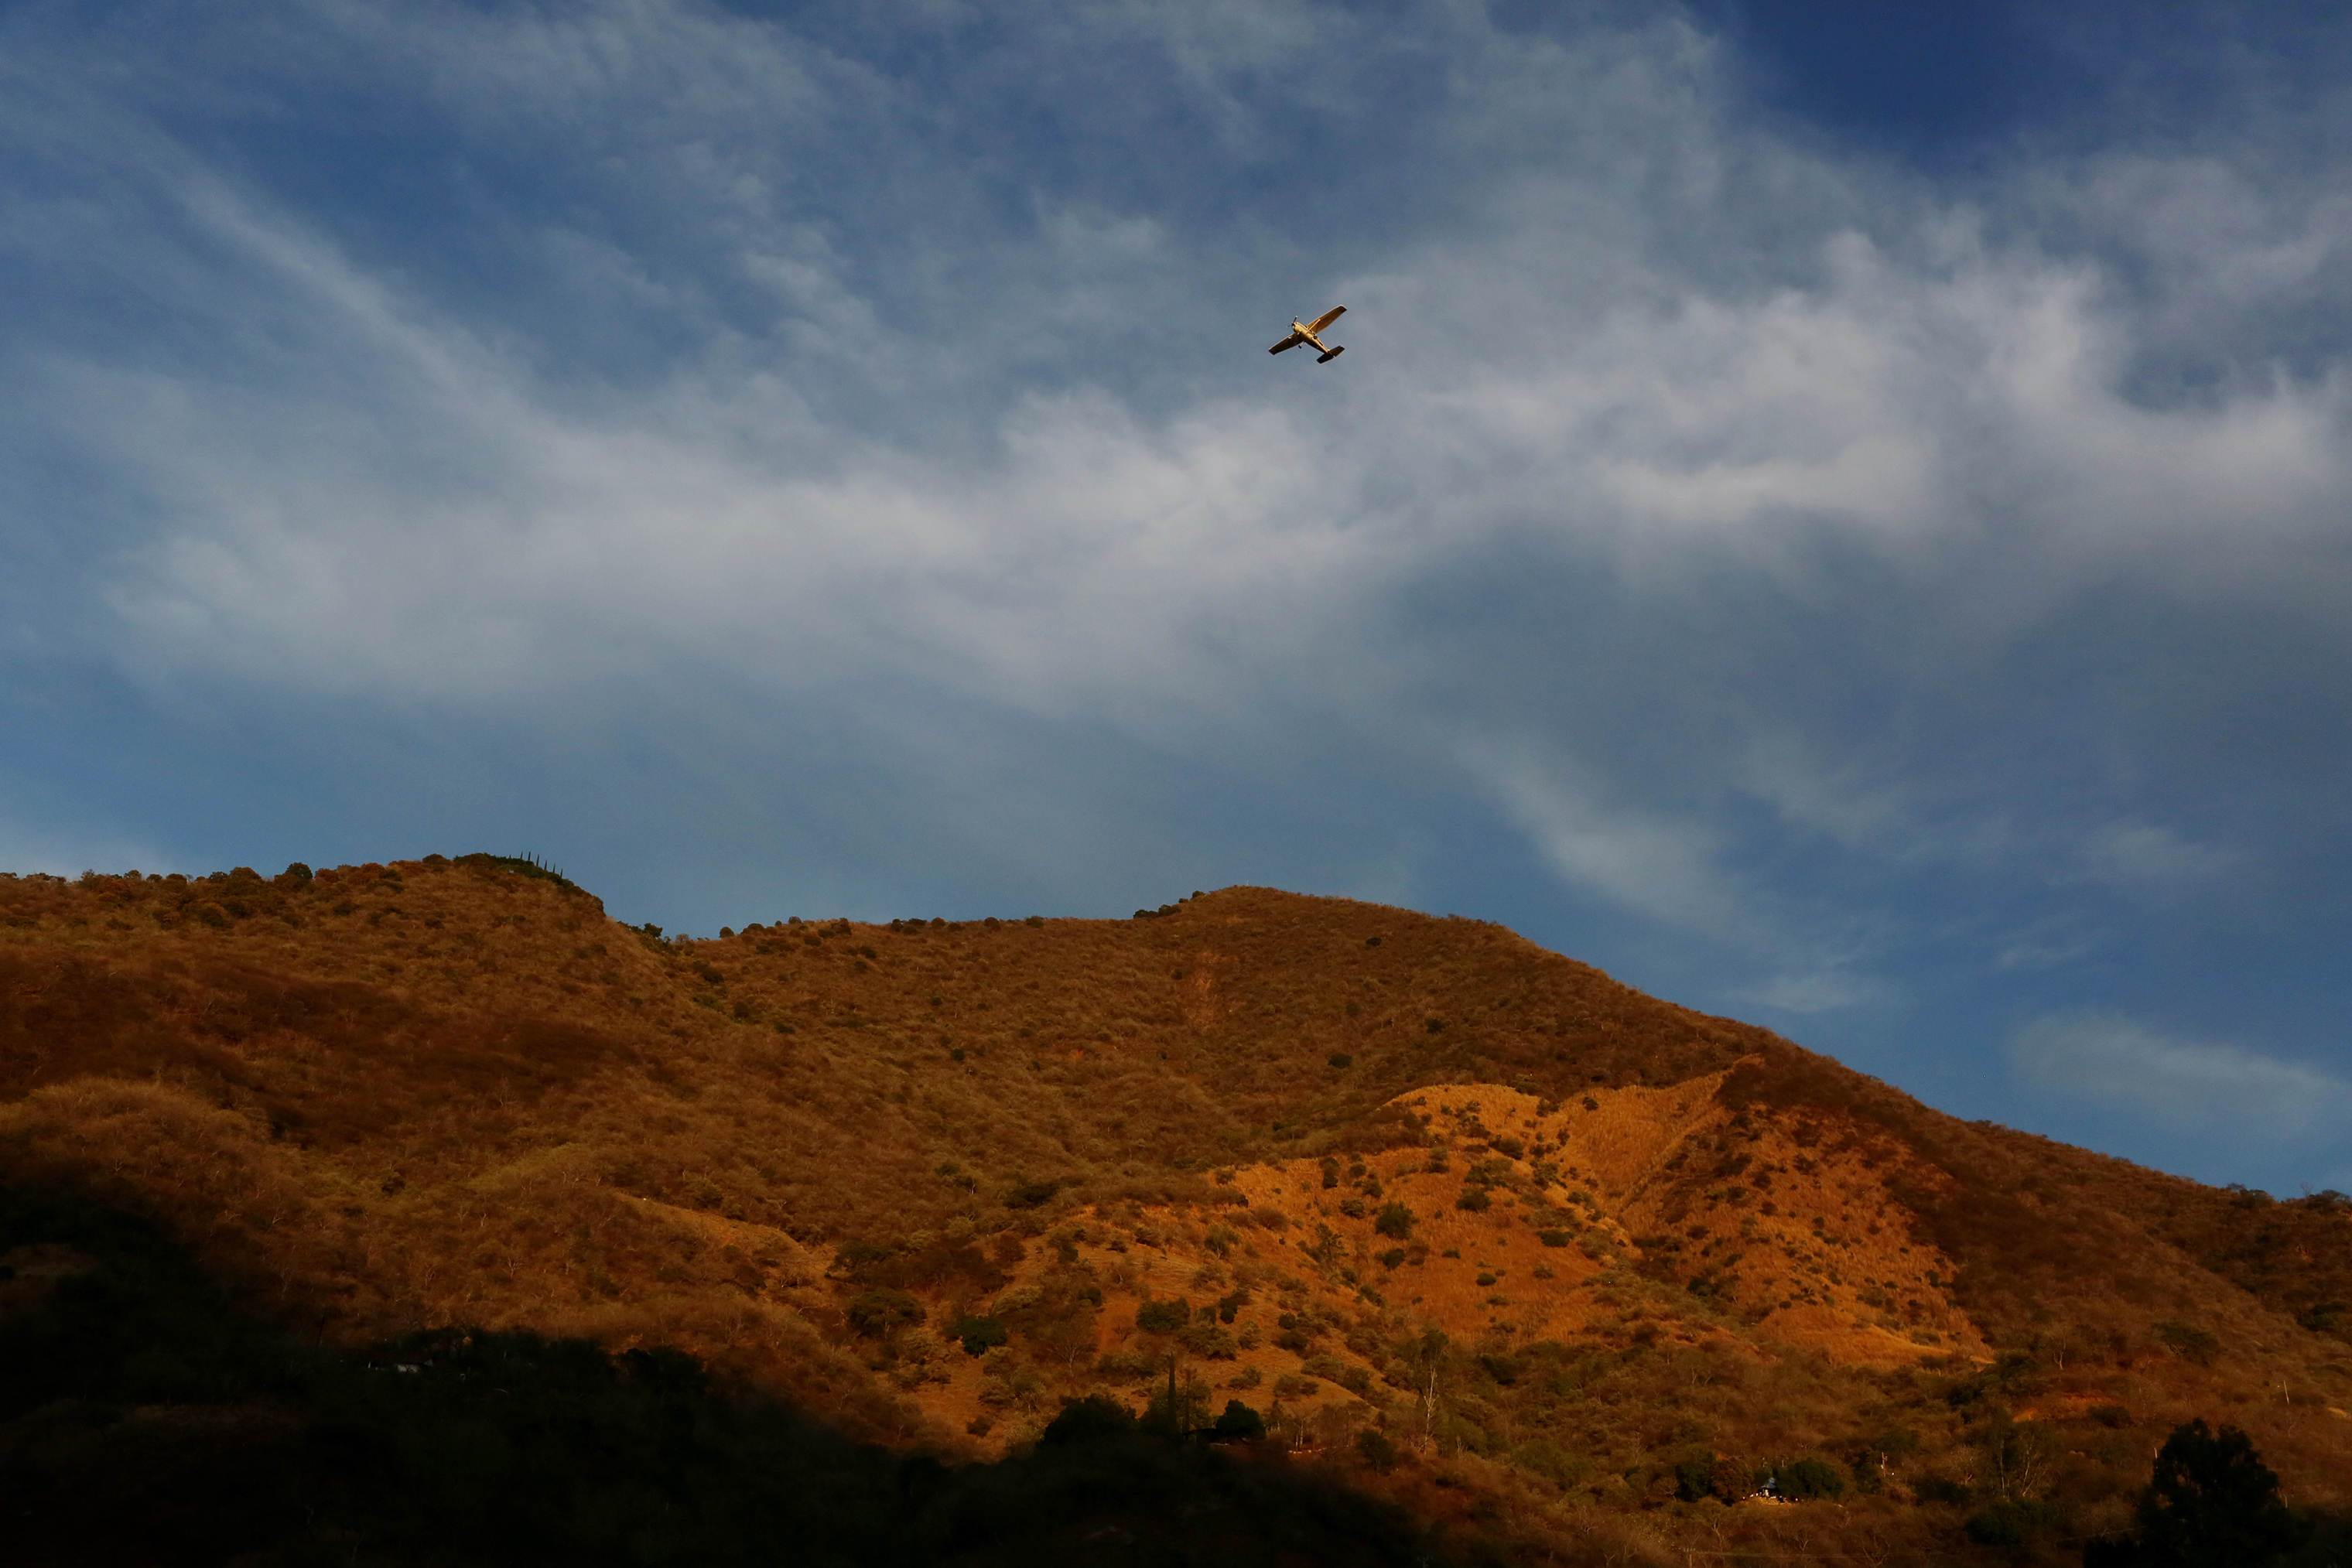 A small private plane takes off from the hilltop next to La Tuna in February.